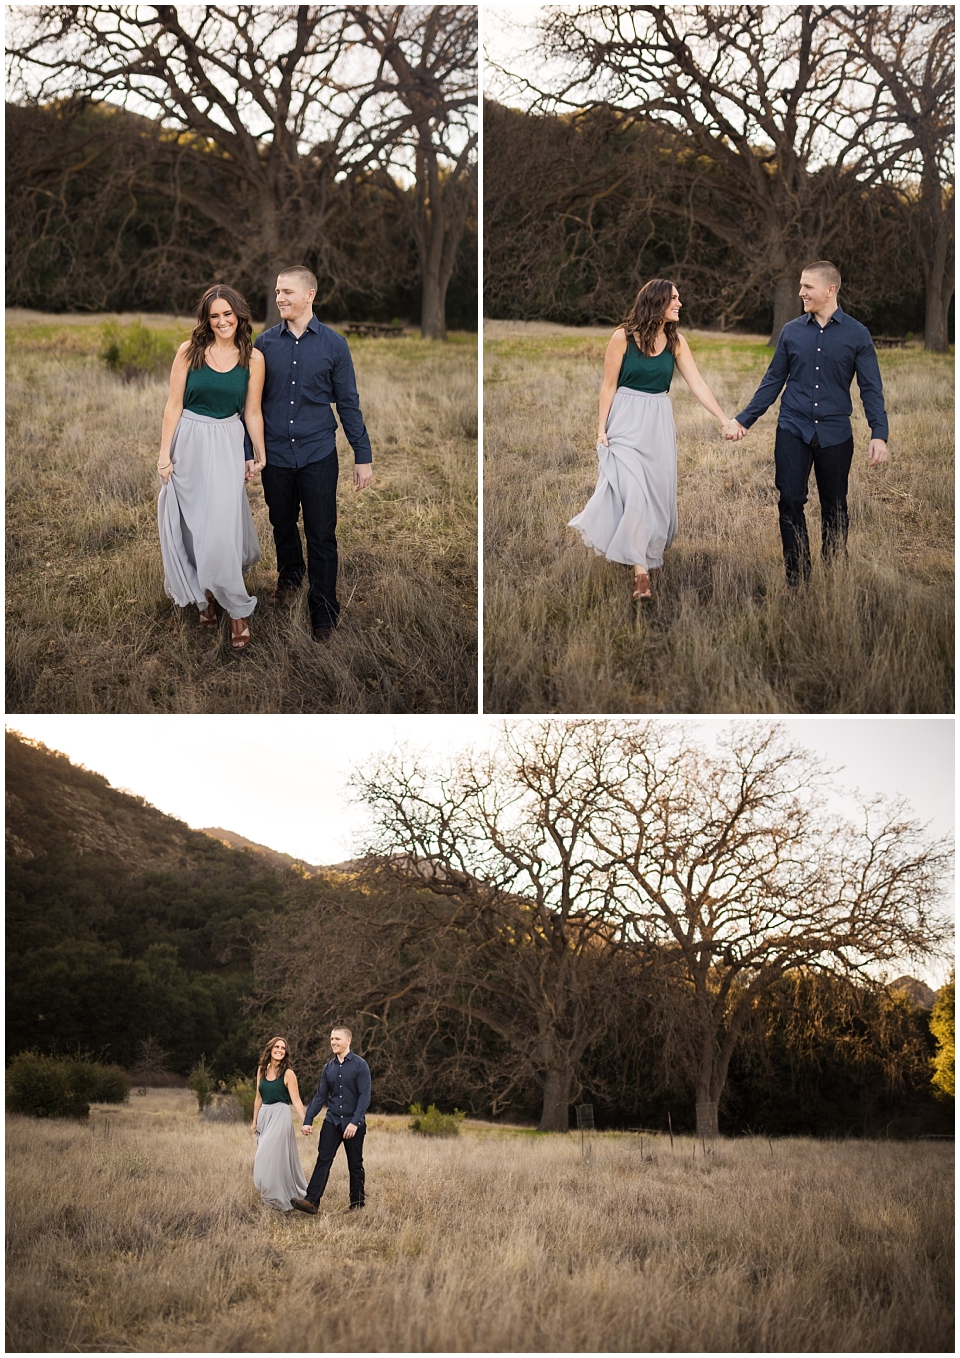 malibu-creek-state-park-engagement-photos-katie-thomas_0003.jpg